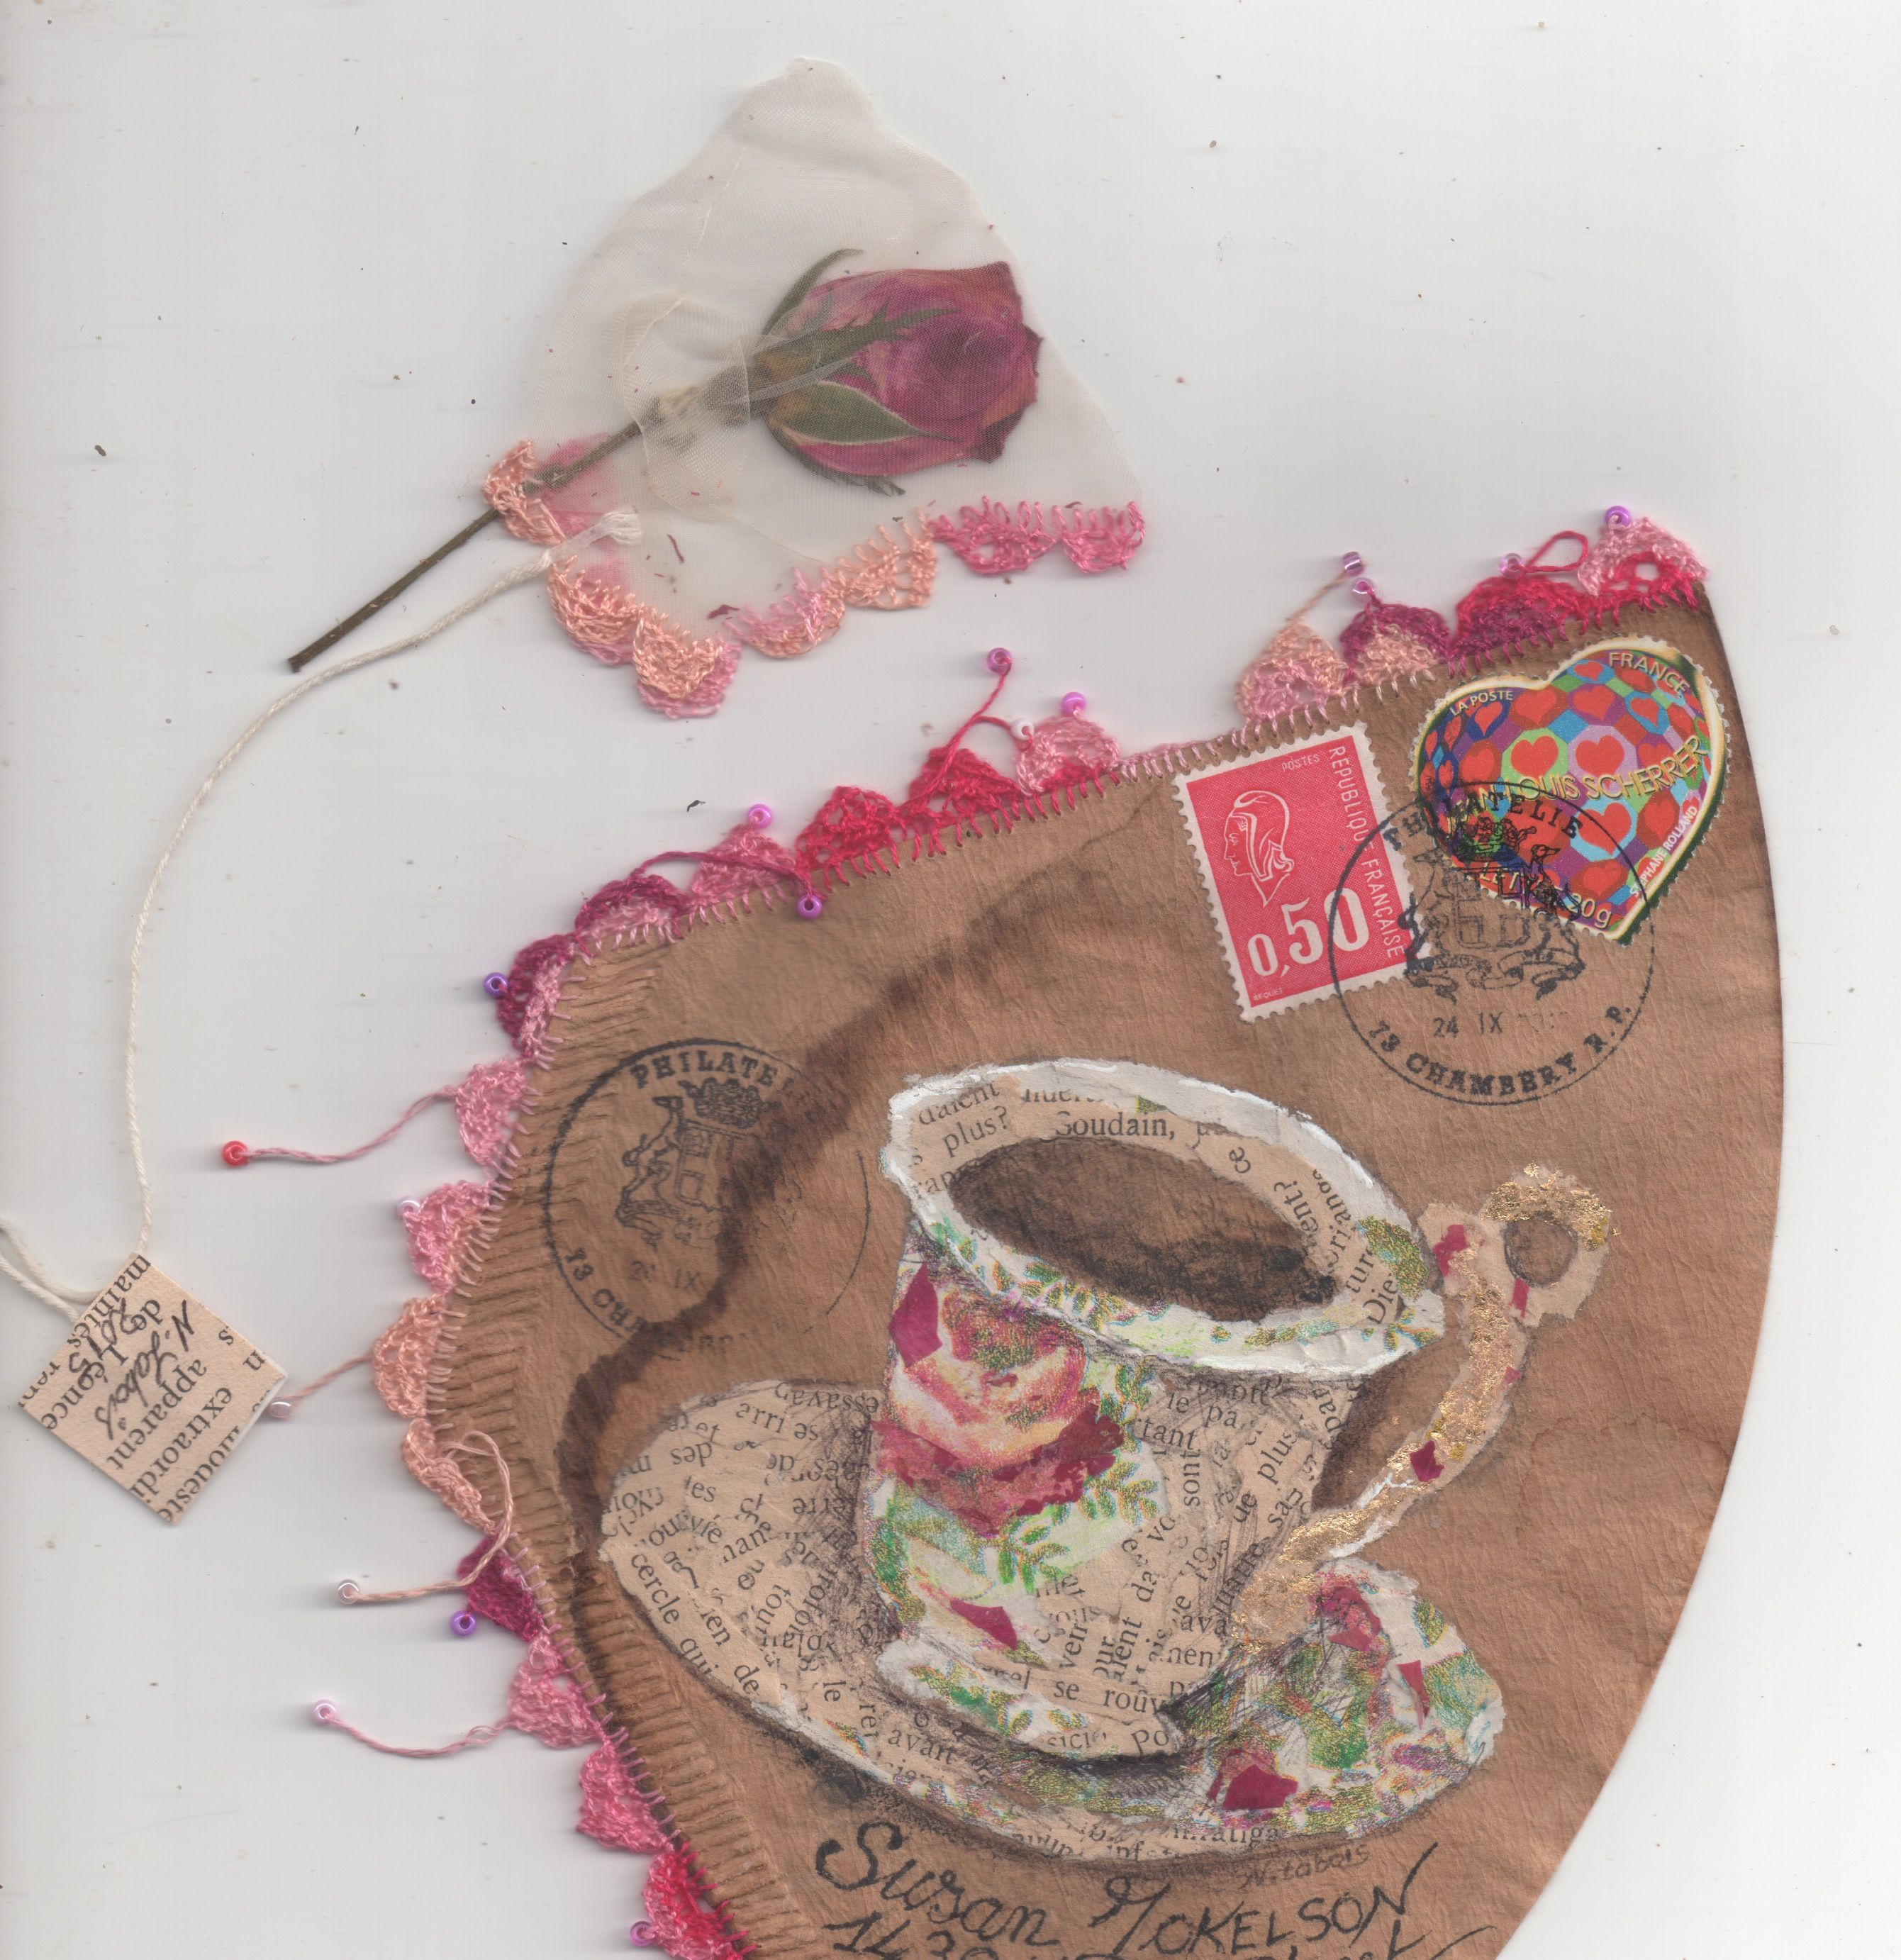 """Clever Nathalie Labois-DeBesson uses coffee filters as sort of envelope on which she collages.  Inside the filter was this """"tea bag"""" containing a rosebud.  How cool is that?!"""